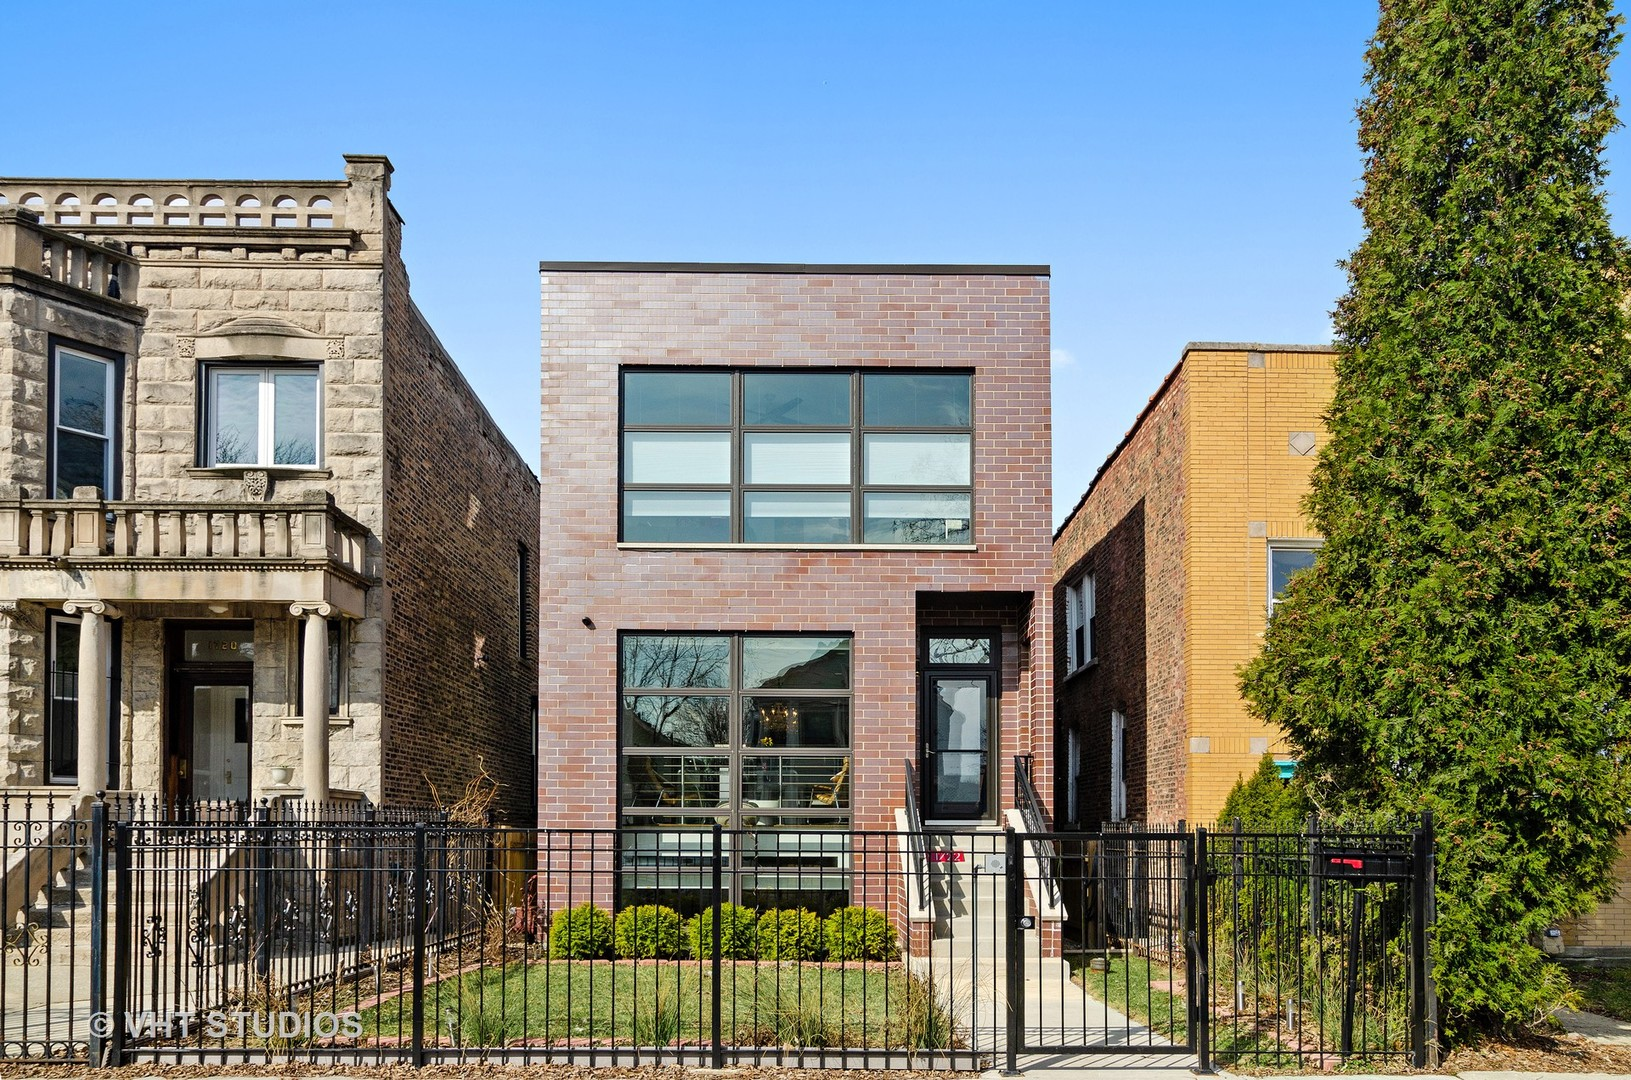 1722 NORTH SAWYER AVENUE, CHICAGO, IL 60647